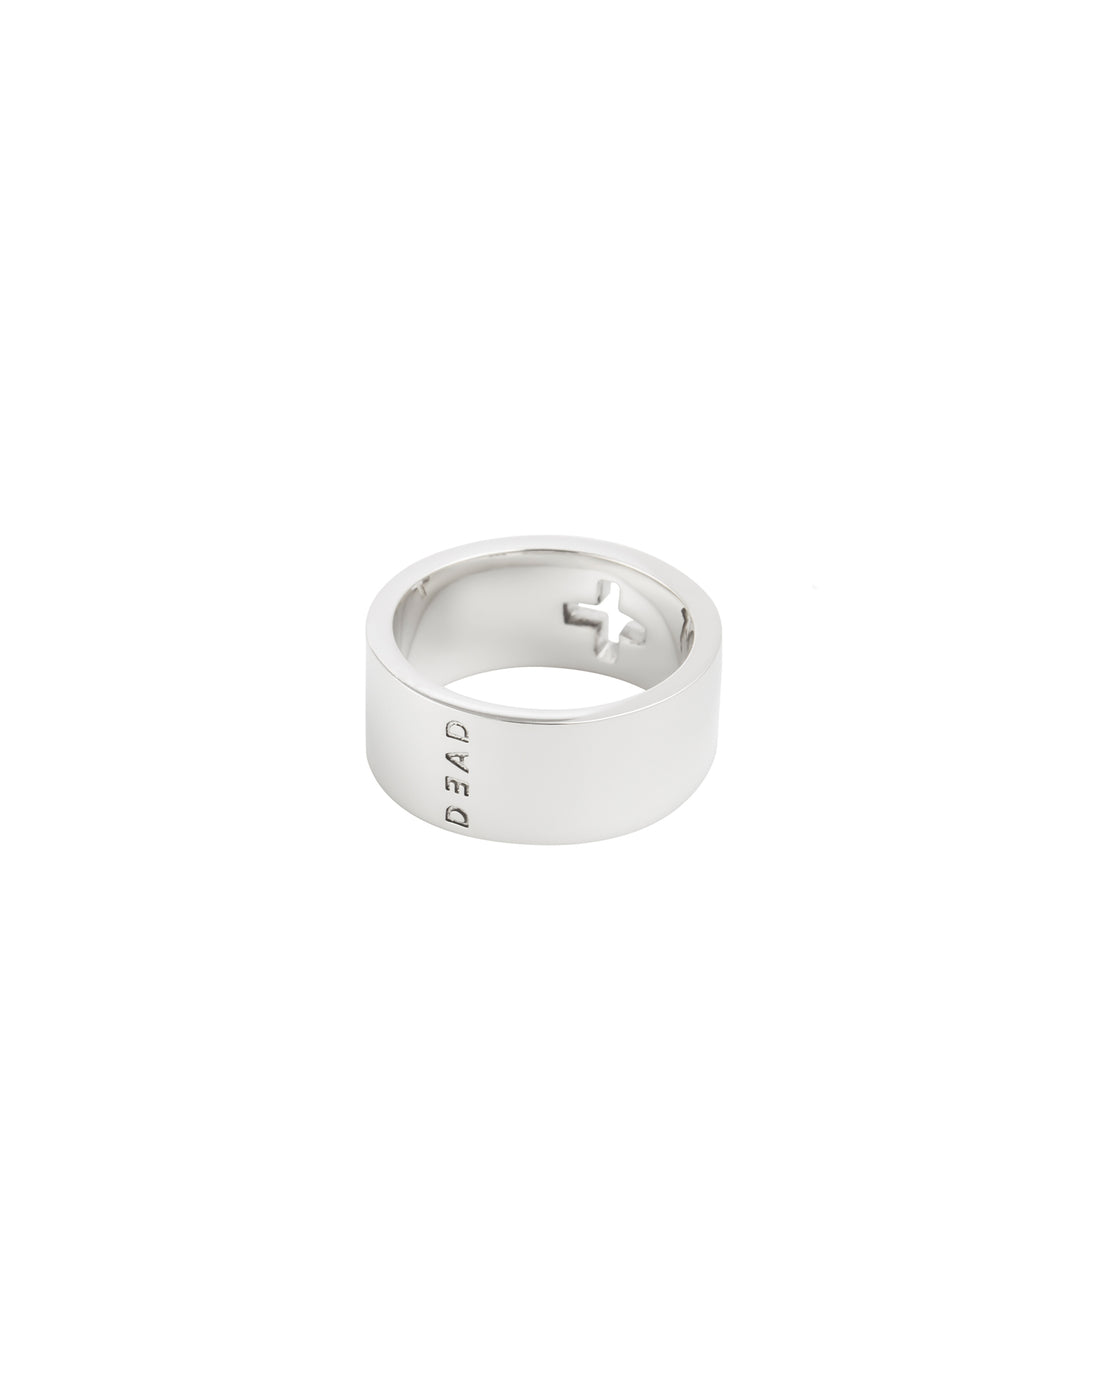 ORCUS RING- SILVER